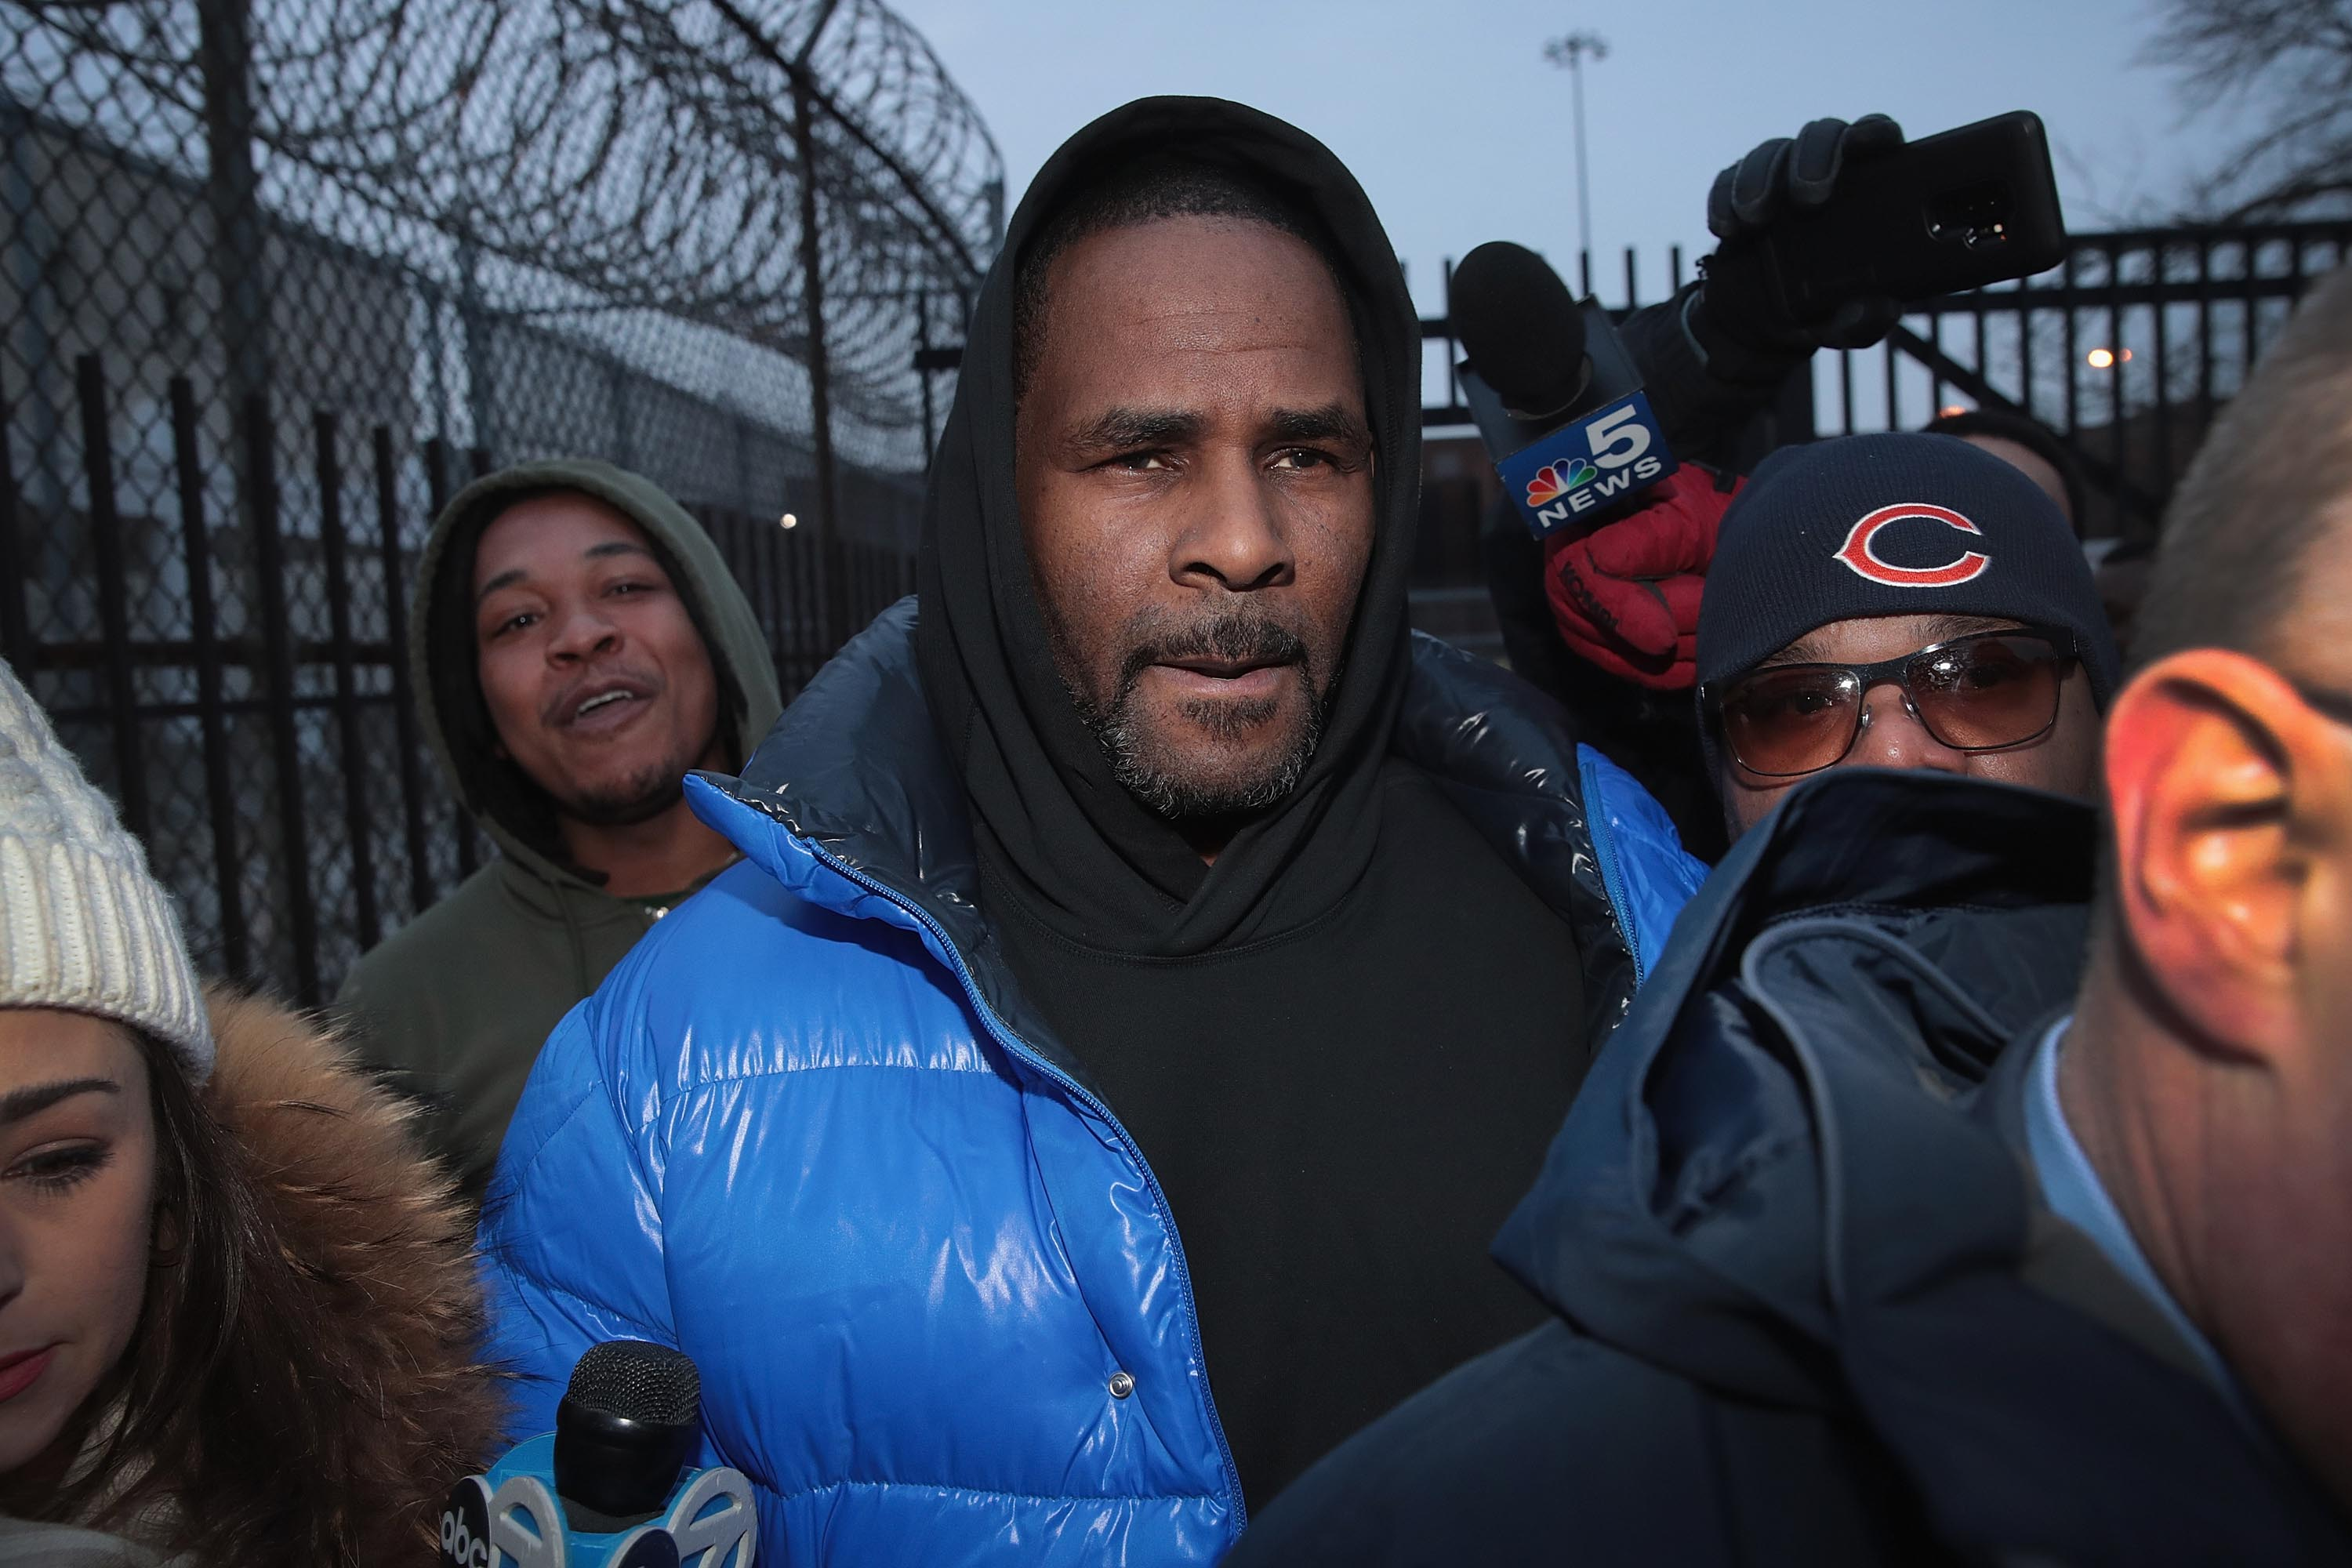 R. Kelly leaves the Cook County jail after posting bail on Feb. 25, 2019 in Chicago | Photo: Getty Images